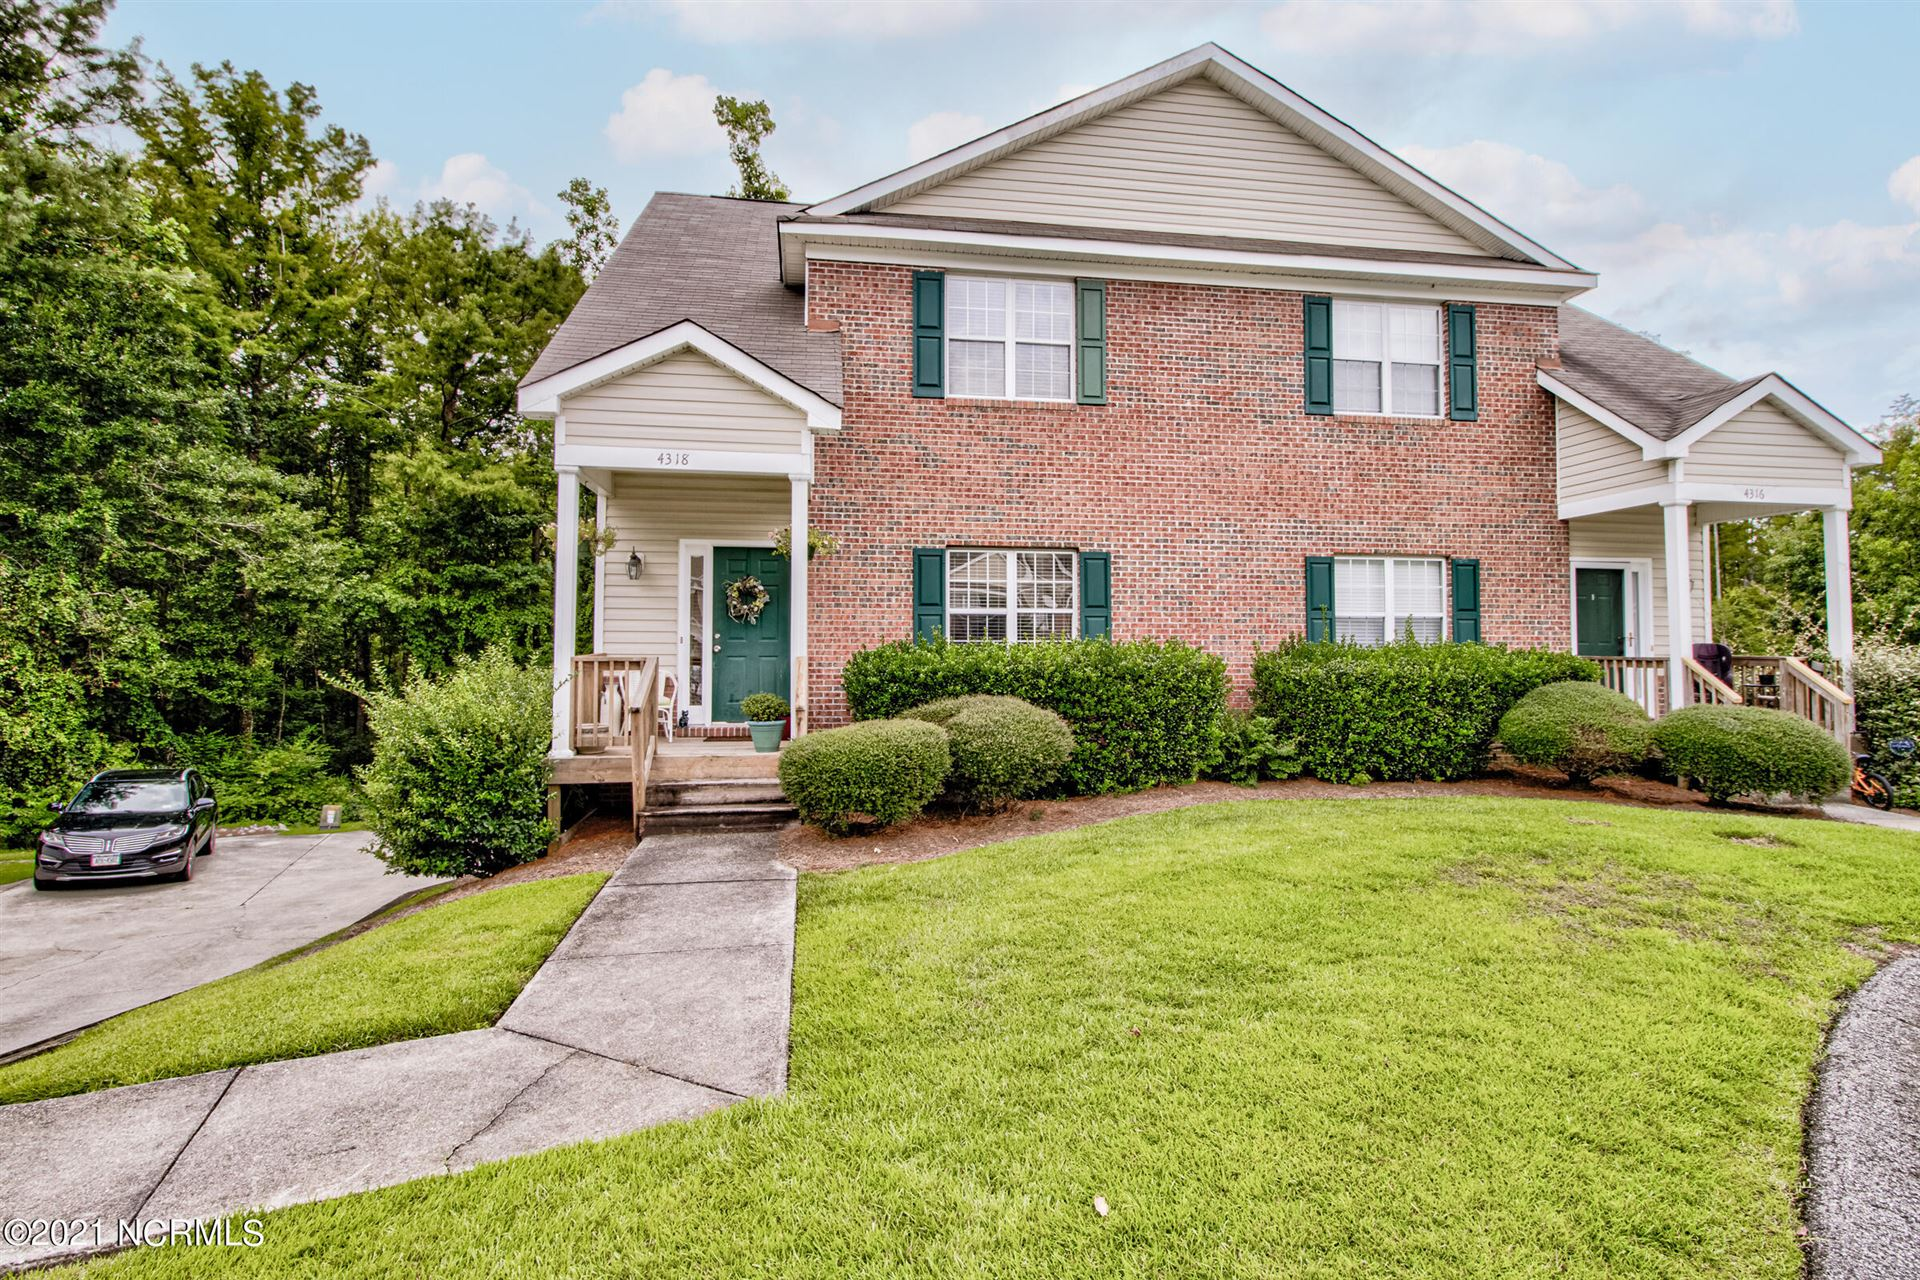 Photo of 4318 Reed Court, Wilmington, NC 28405 (MLS # 100283794)